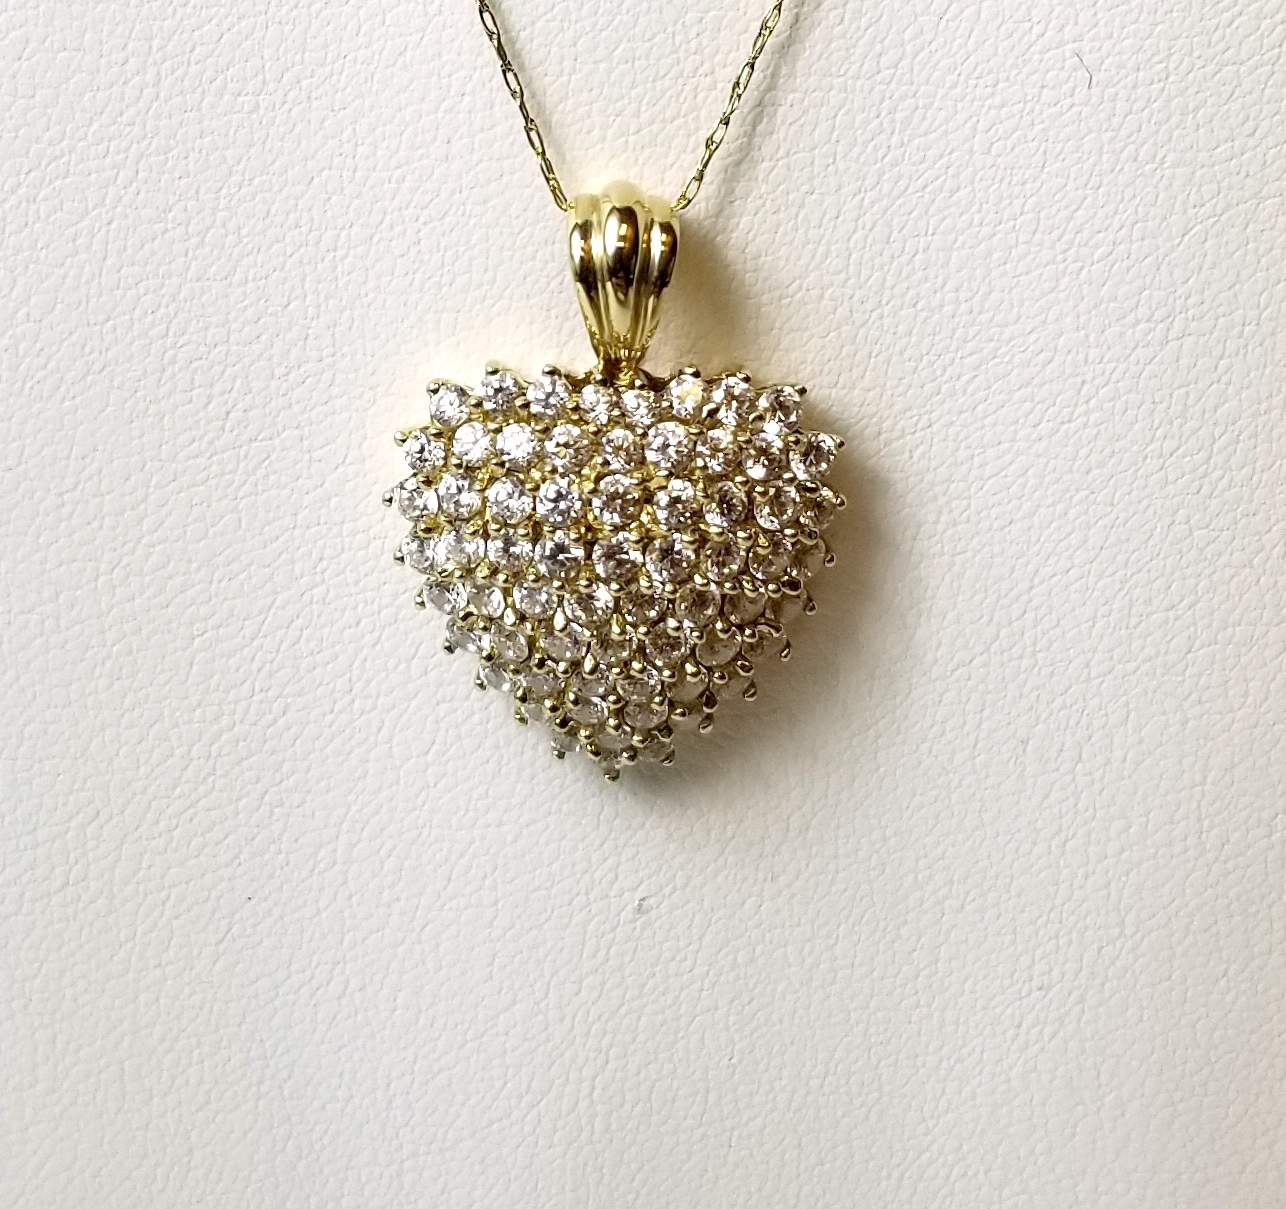 14K Yellow Gold 4.70g Heart Pendant with Clear Stones